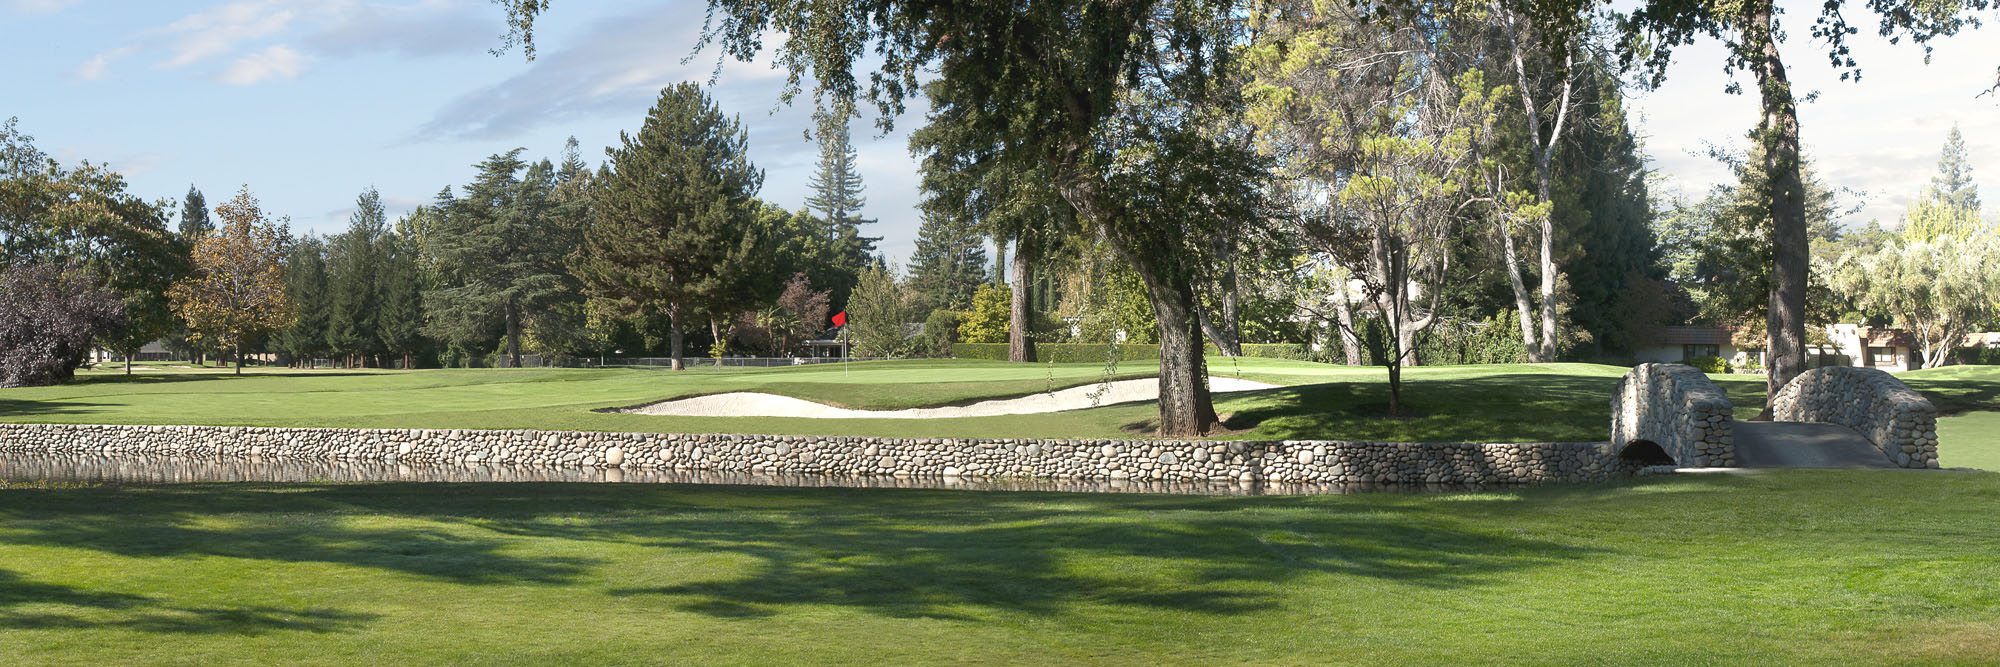 Golf Course Image - Butte Creek Country Club No. 17